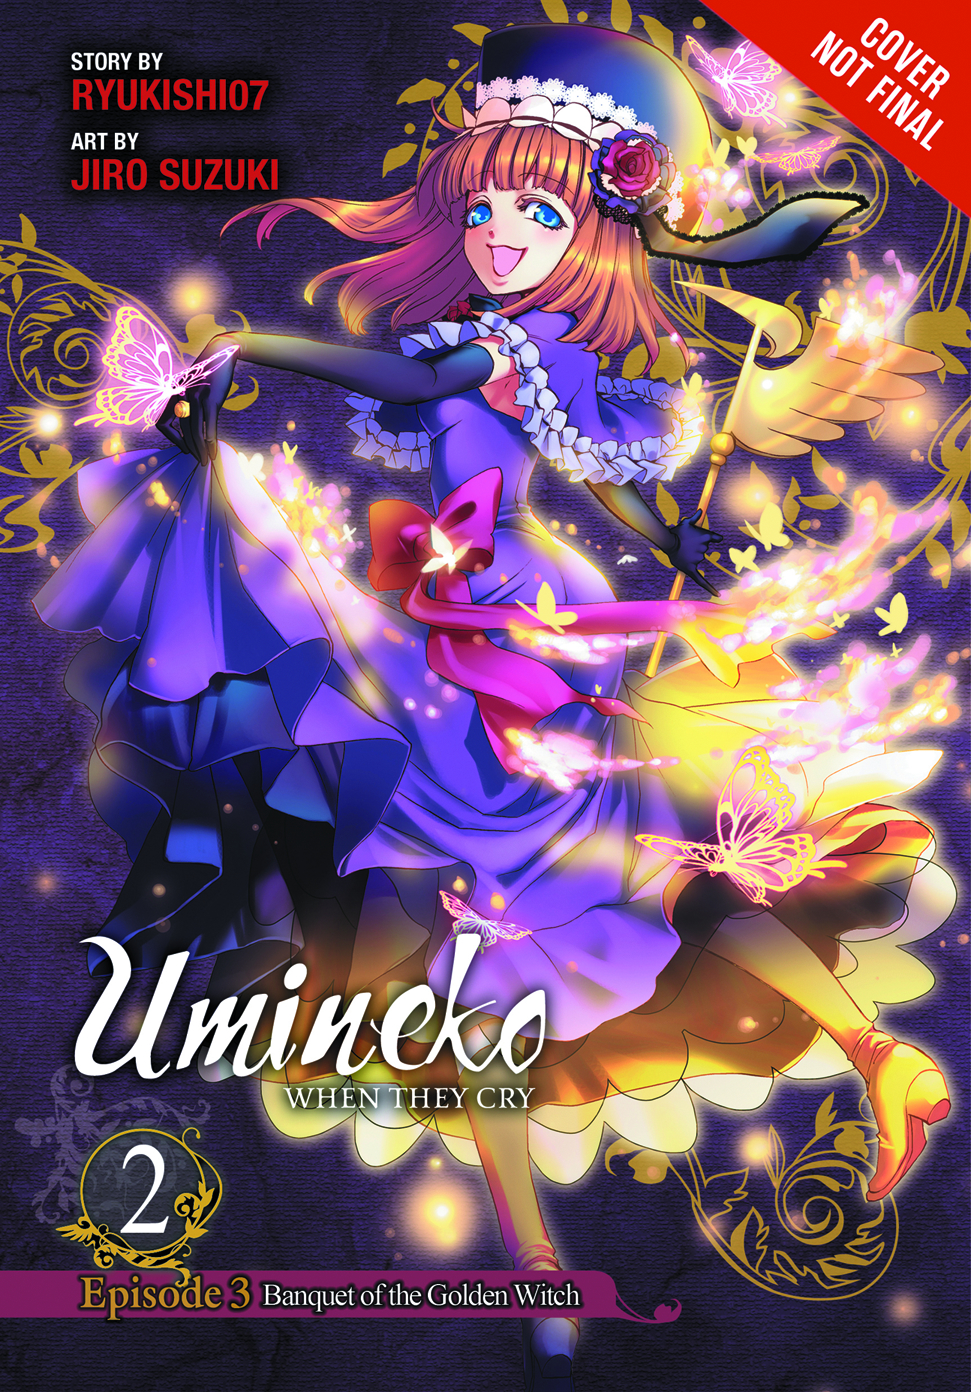 UMINEKO WHEN THEY CRY GN VOL 06 BANQUET GOLDEN WITCH PT 2